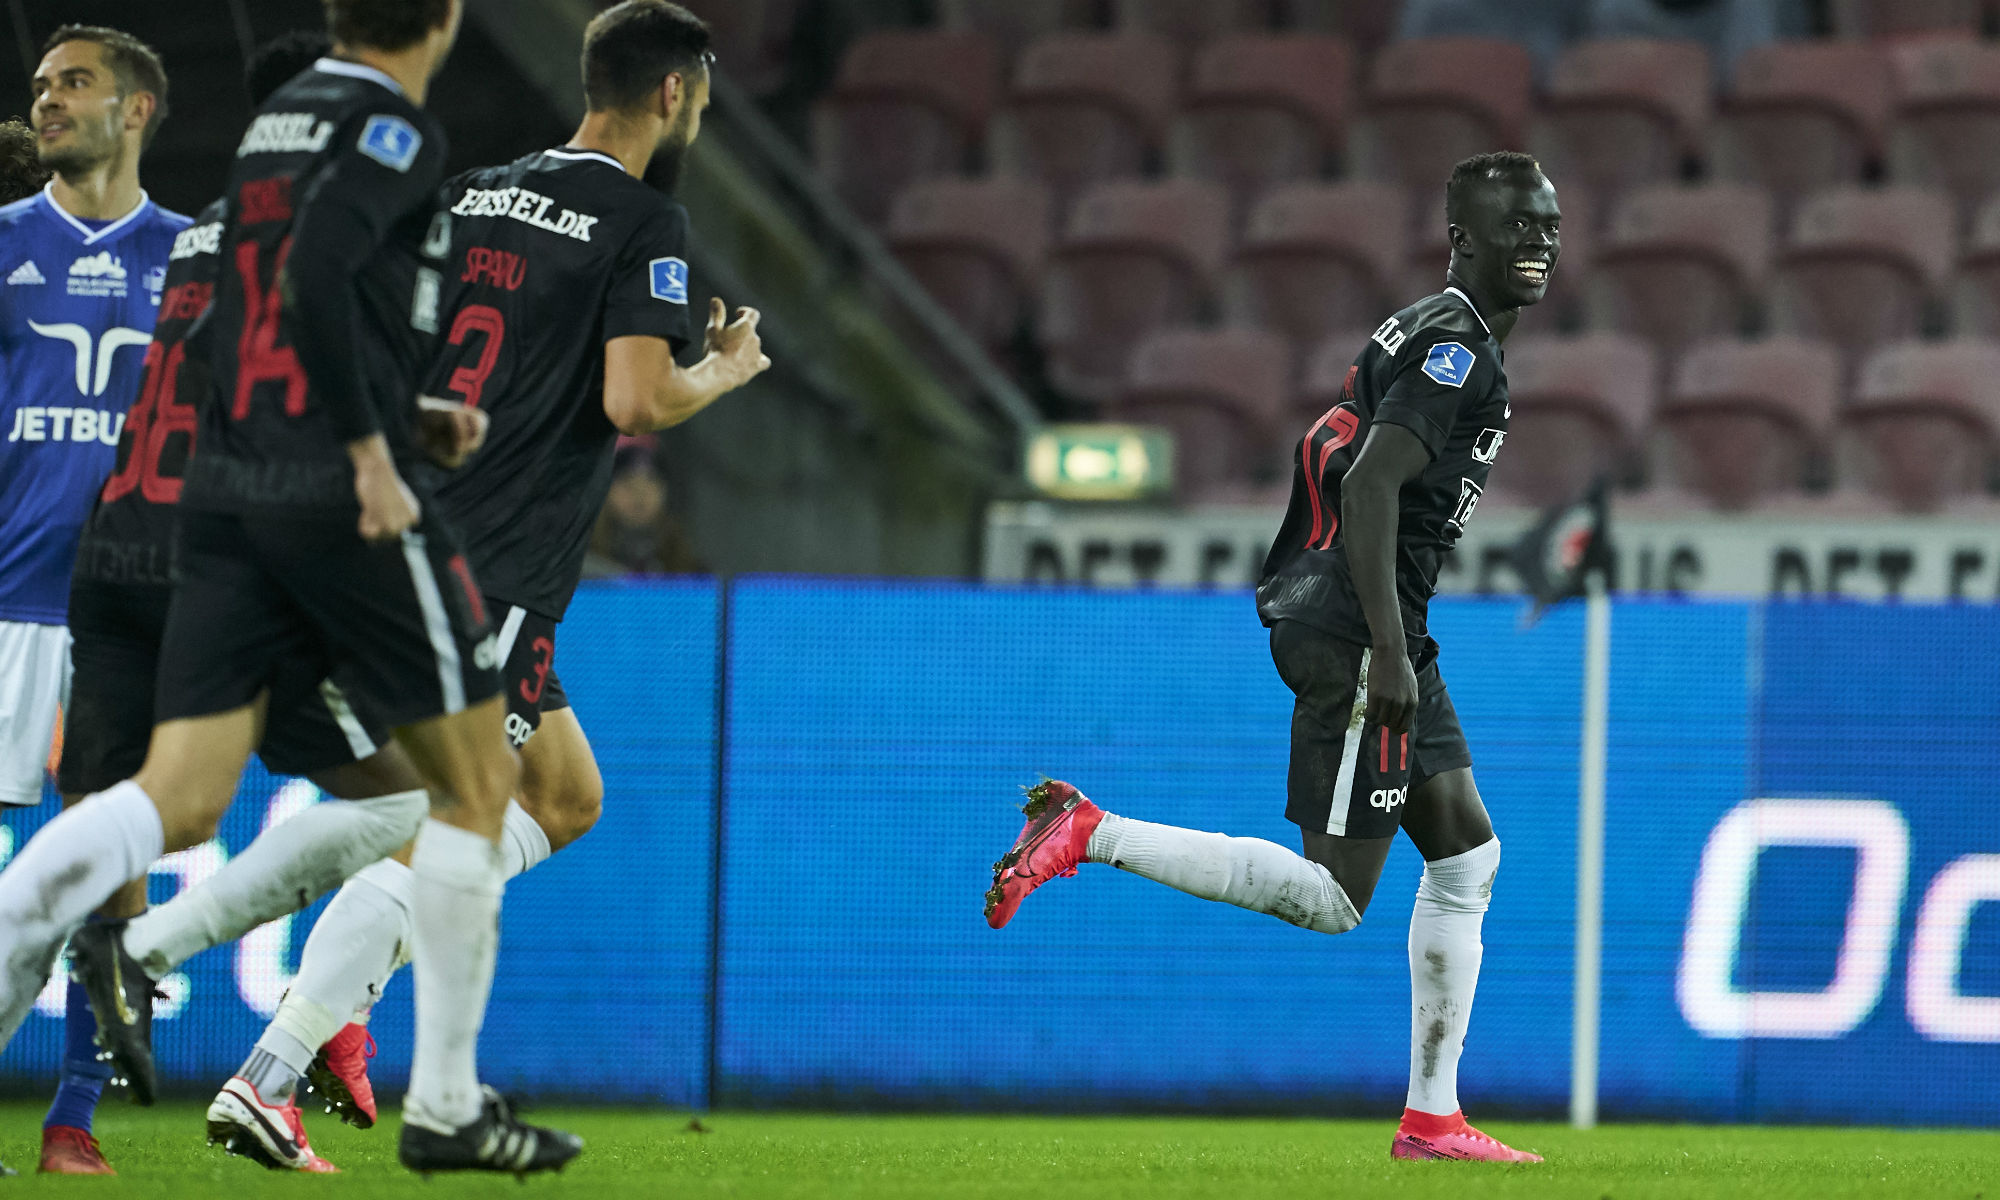 Aussies Abroad: Mabil fires FC Midtjylland to open up lead in Denmark